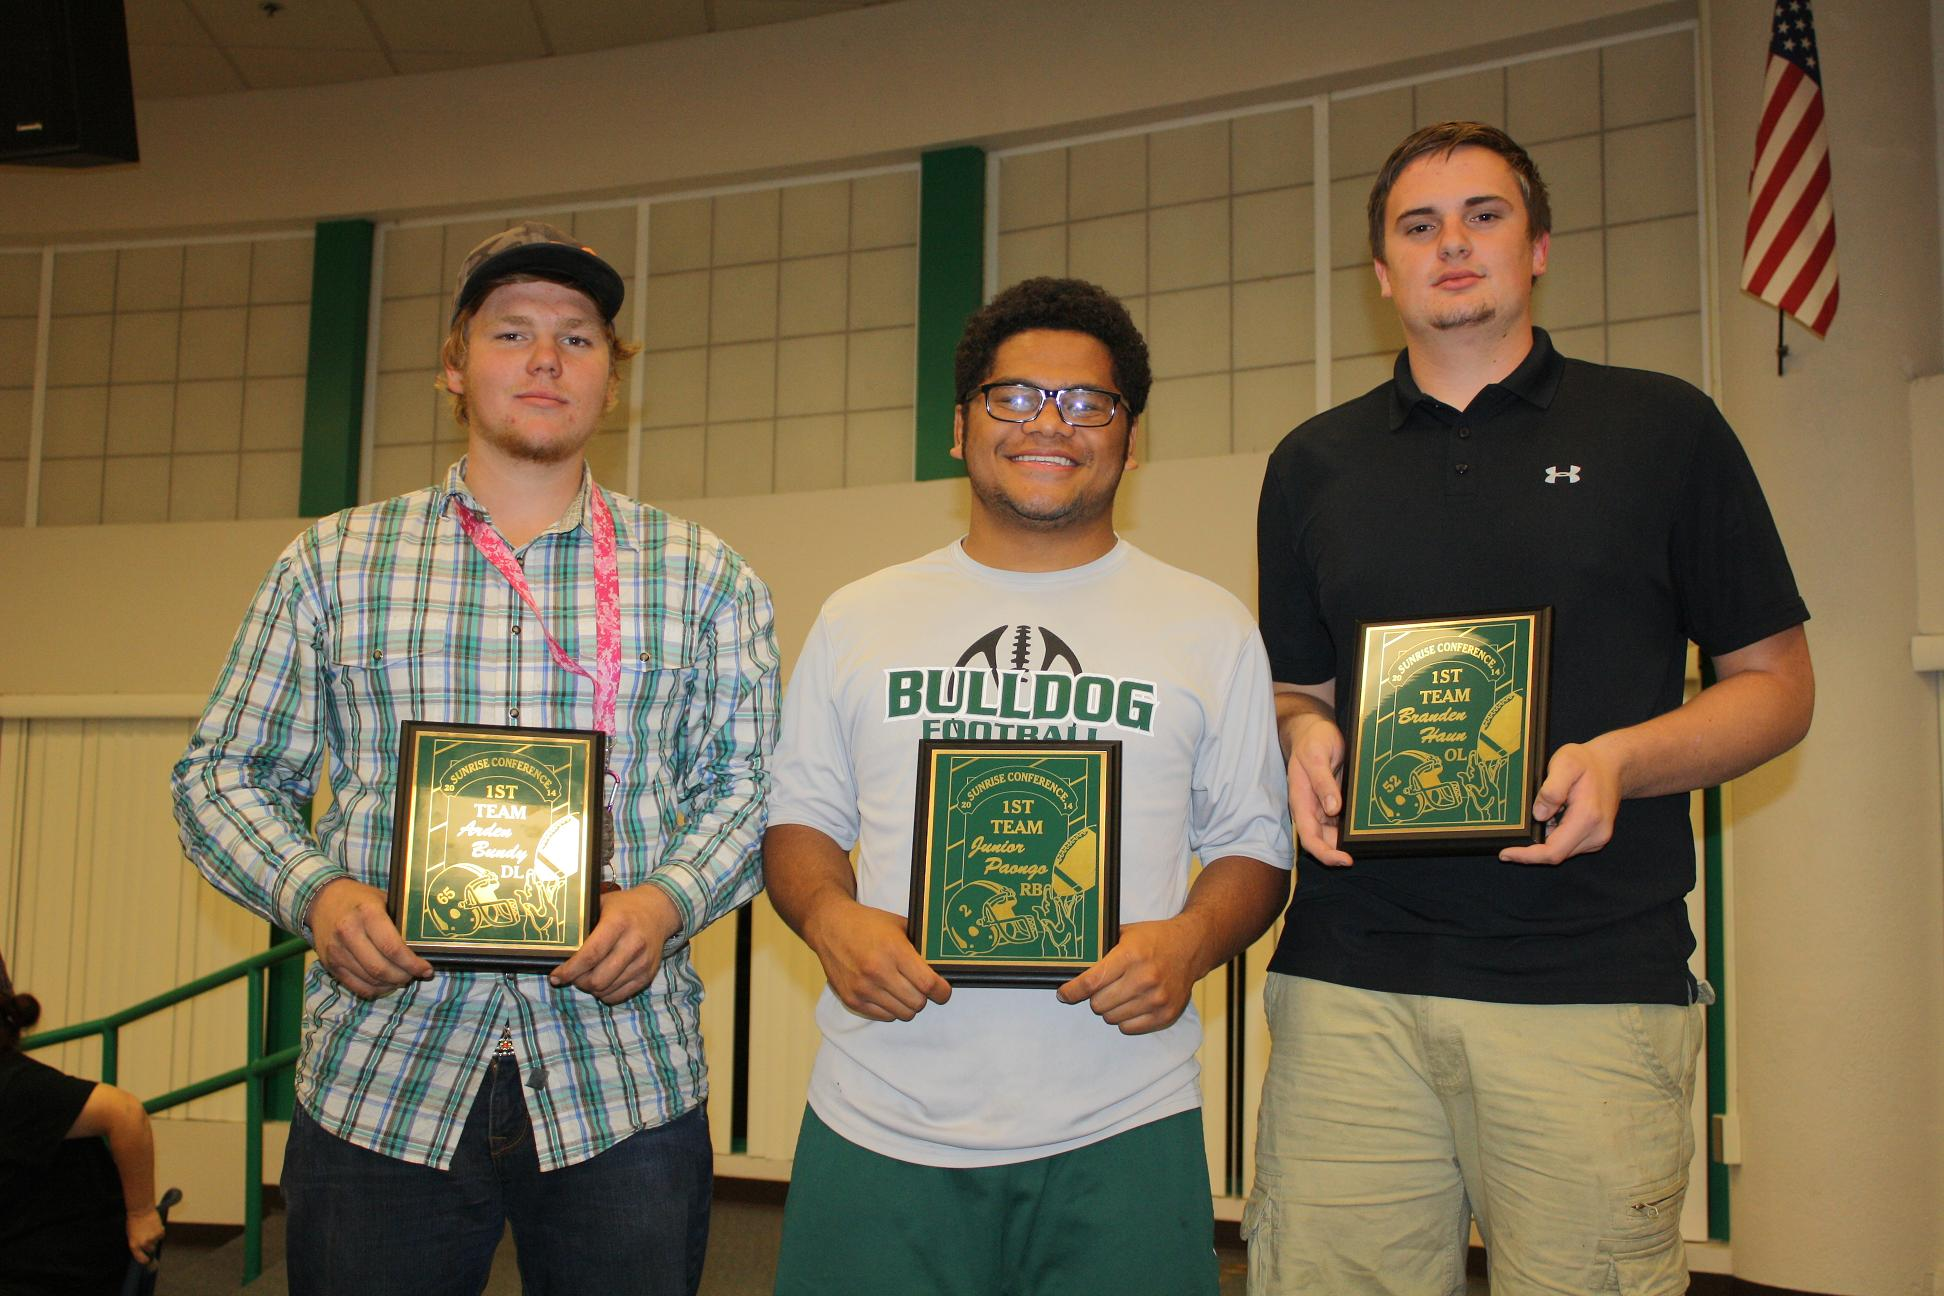 Bulldog football holds annual awards banquet